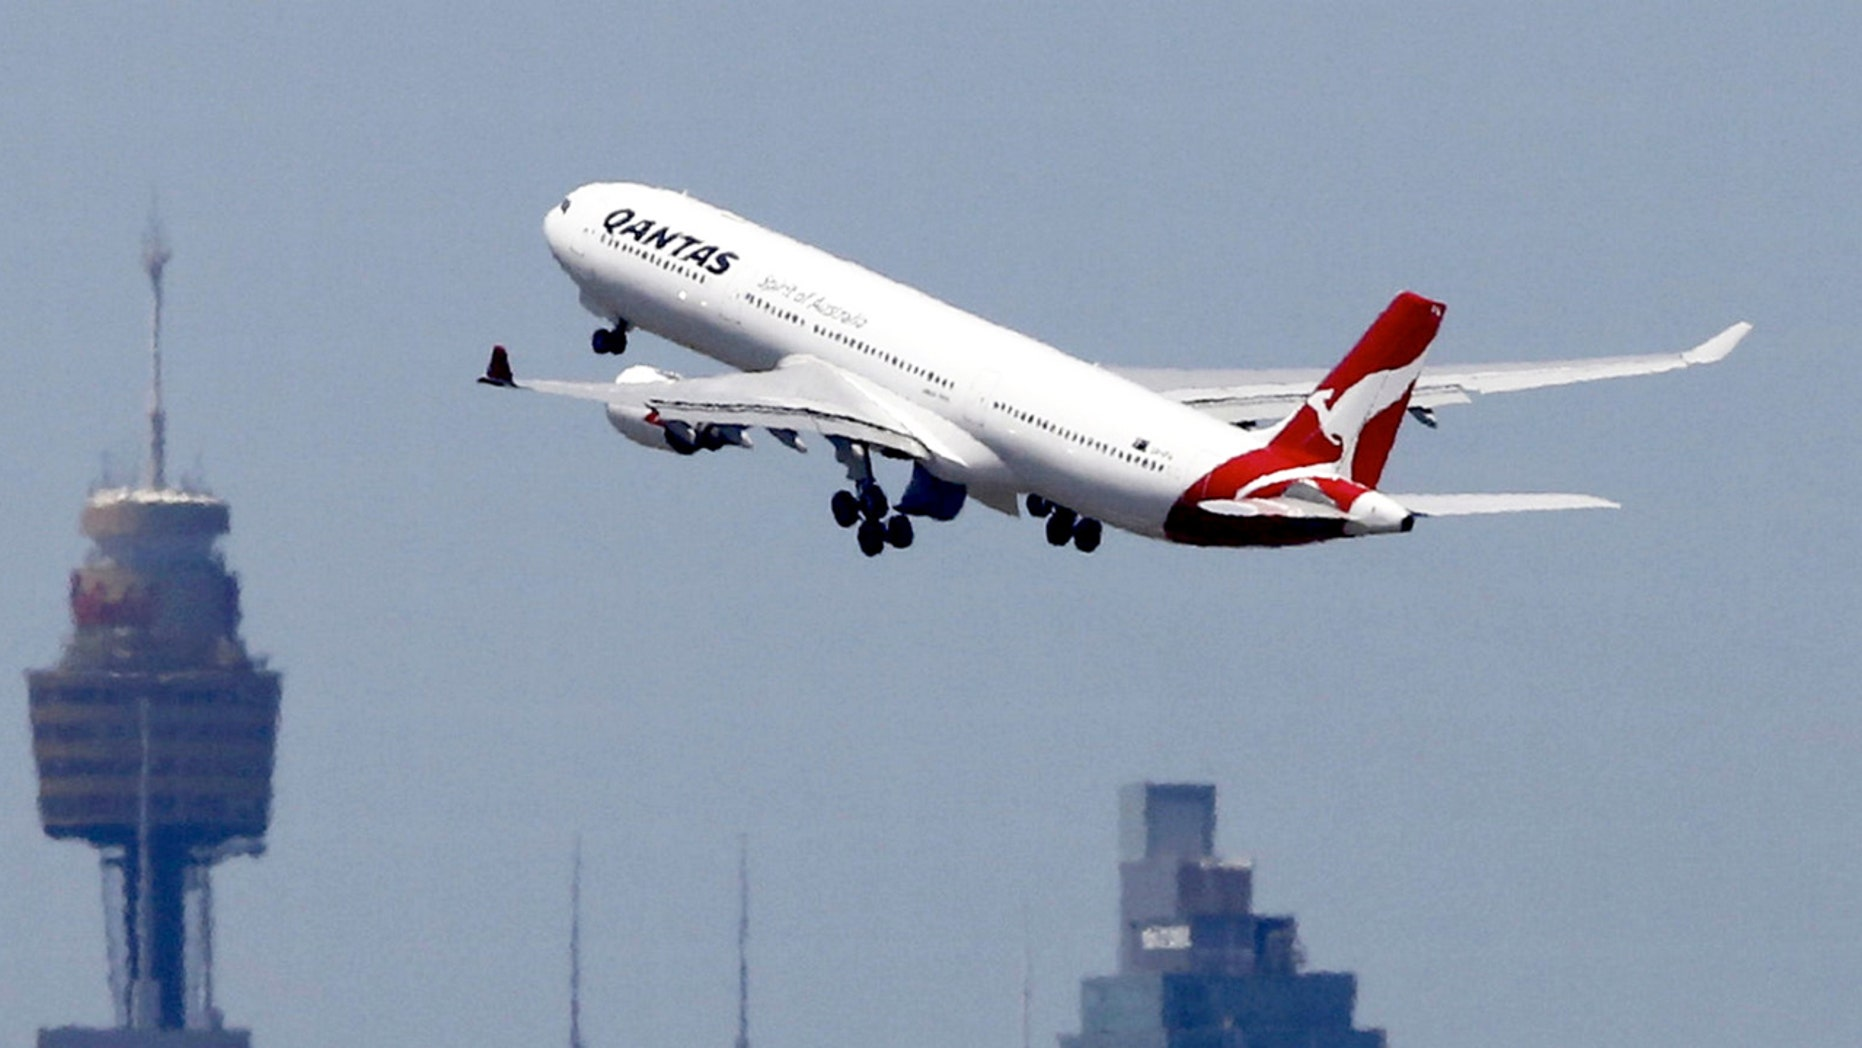 Qantas will offer the world's first nonstop direct flight between Australia and Europe.